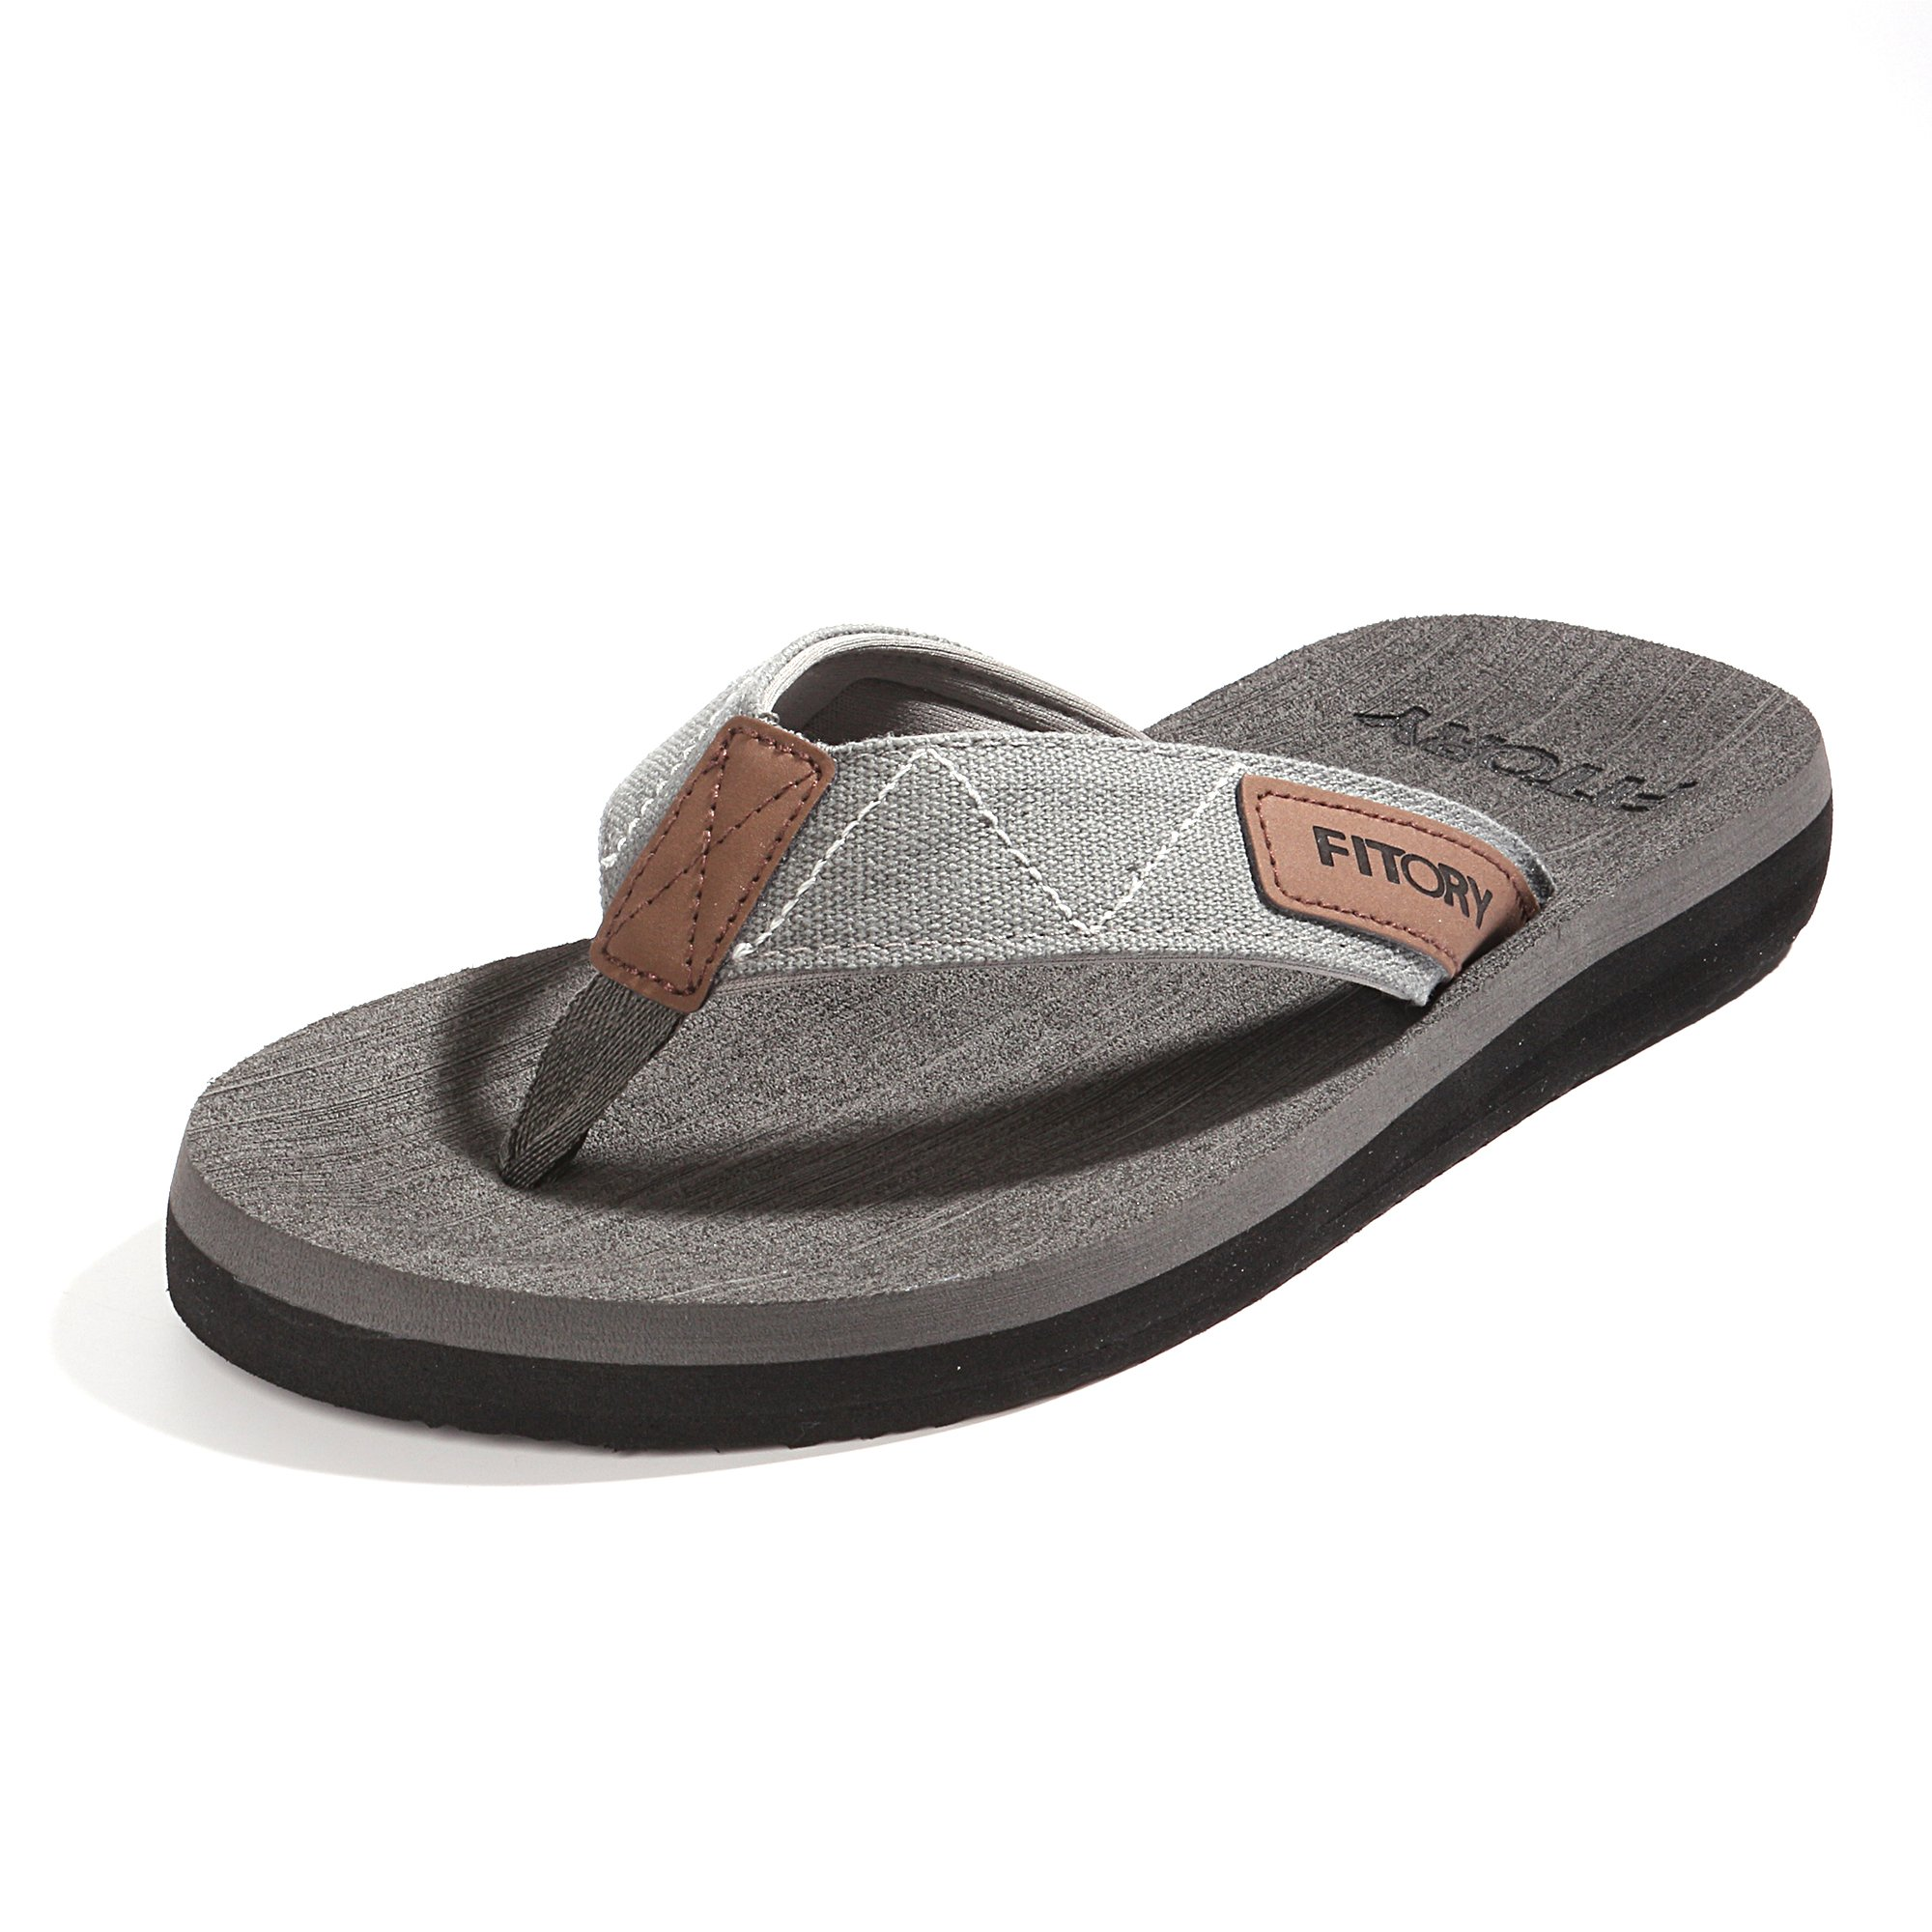 FITORY Men's Flip-Flops Arch Support Thongs Comfort Slippers for Beach Size 7-13